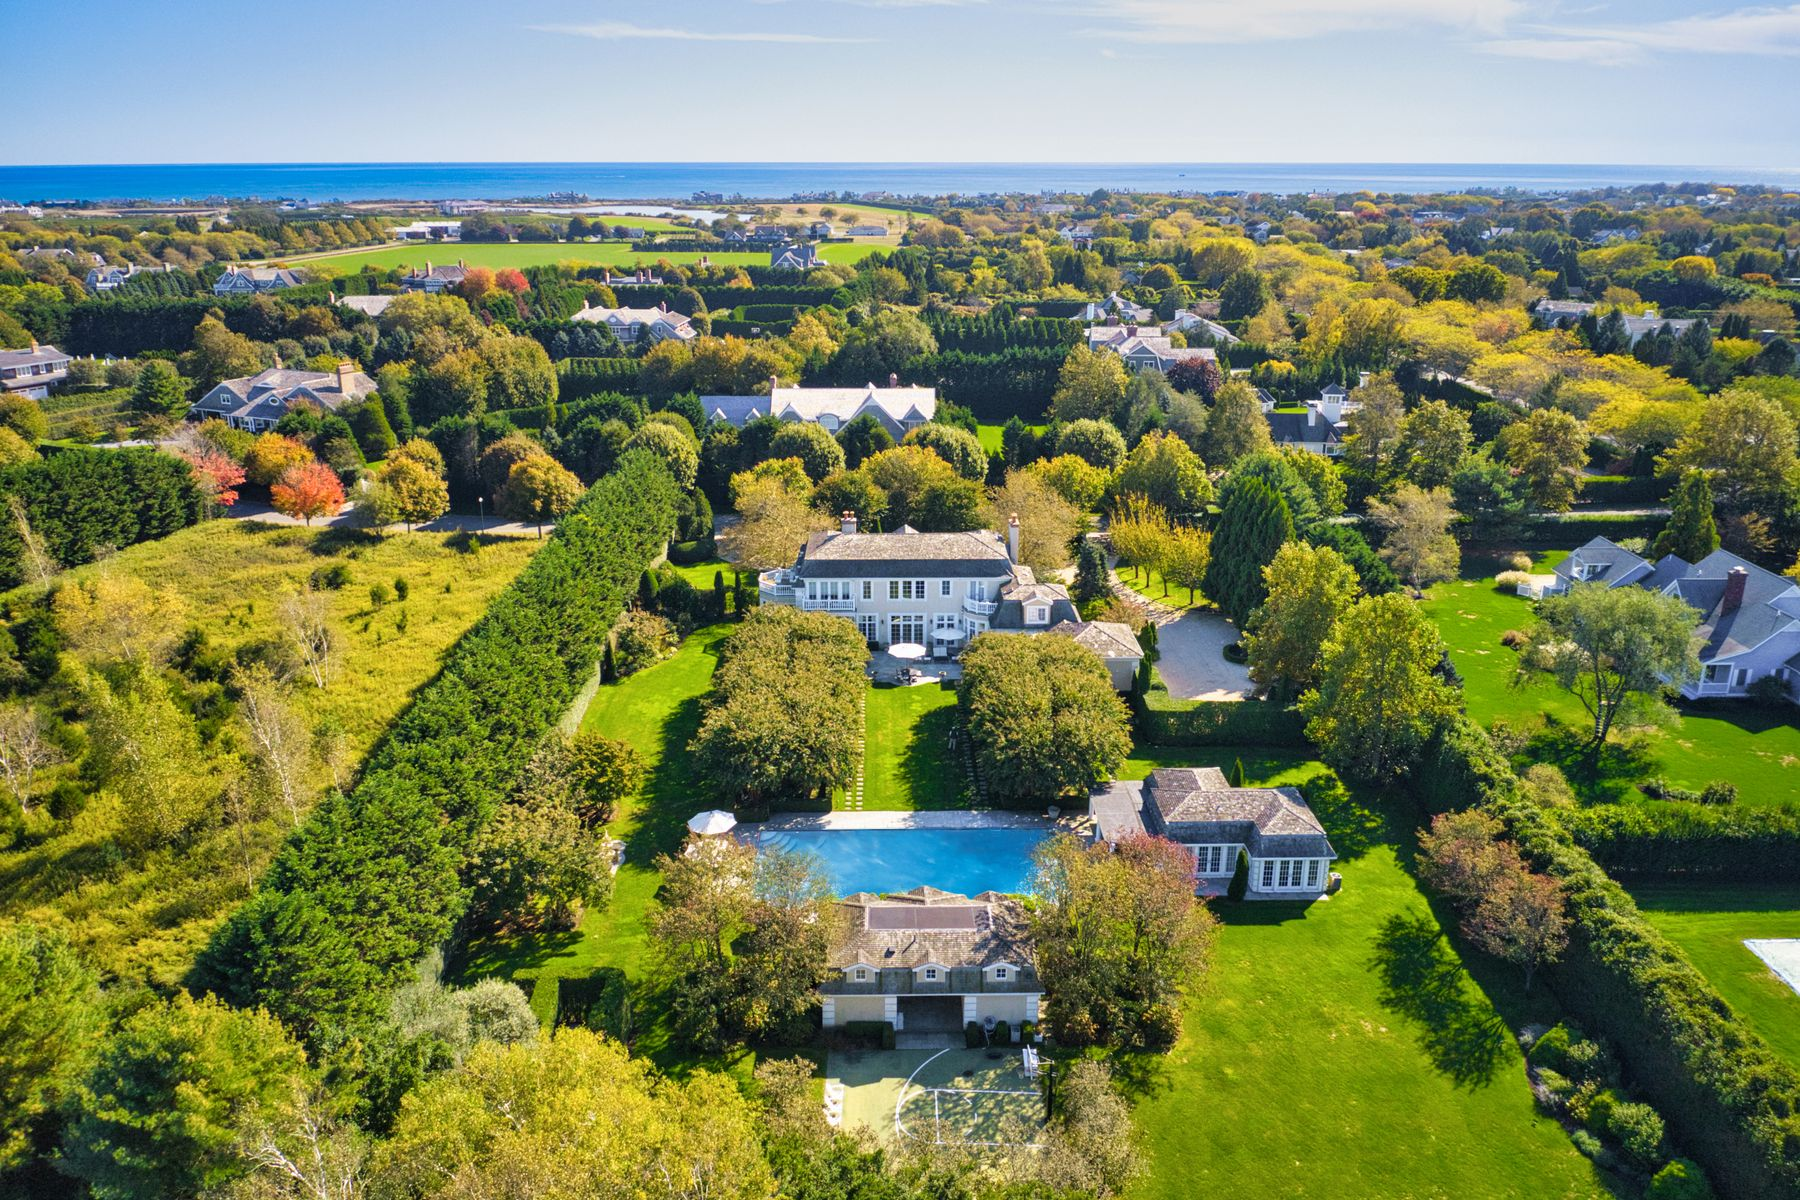 Property for Sale at Majestic Village Estate Mile From Beach Southampton, New York 11968 United States